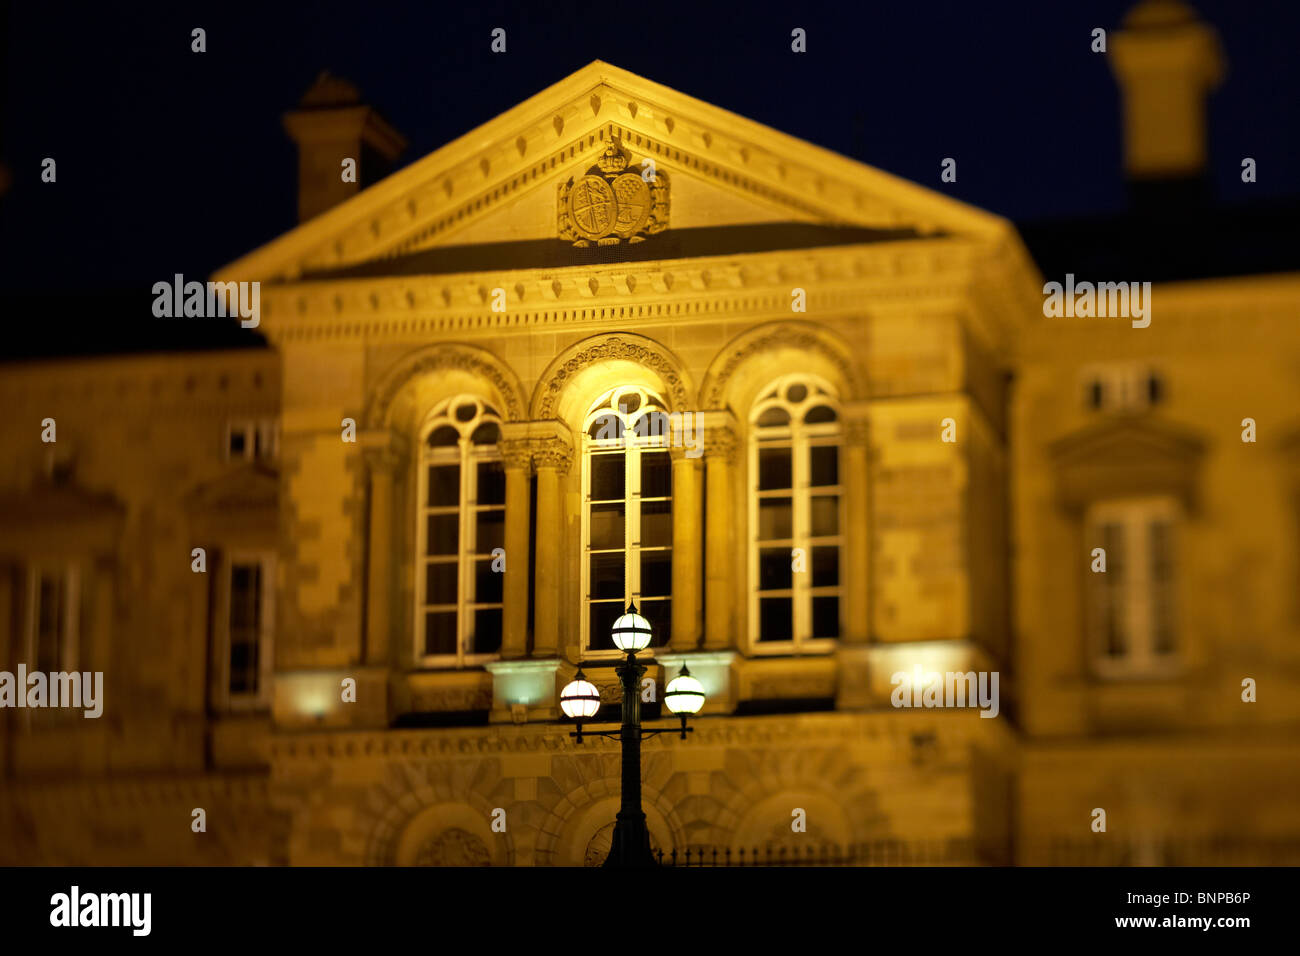 custom house building in Belfast city centre Northern Ireland UK. - Stock Image